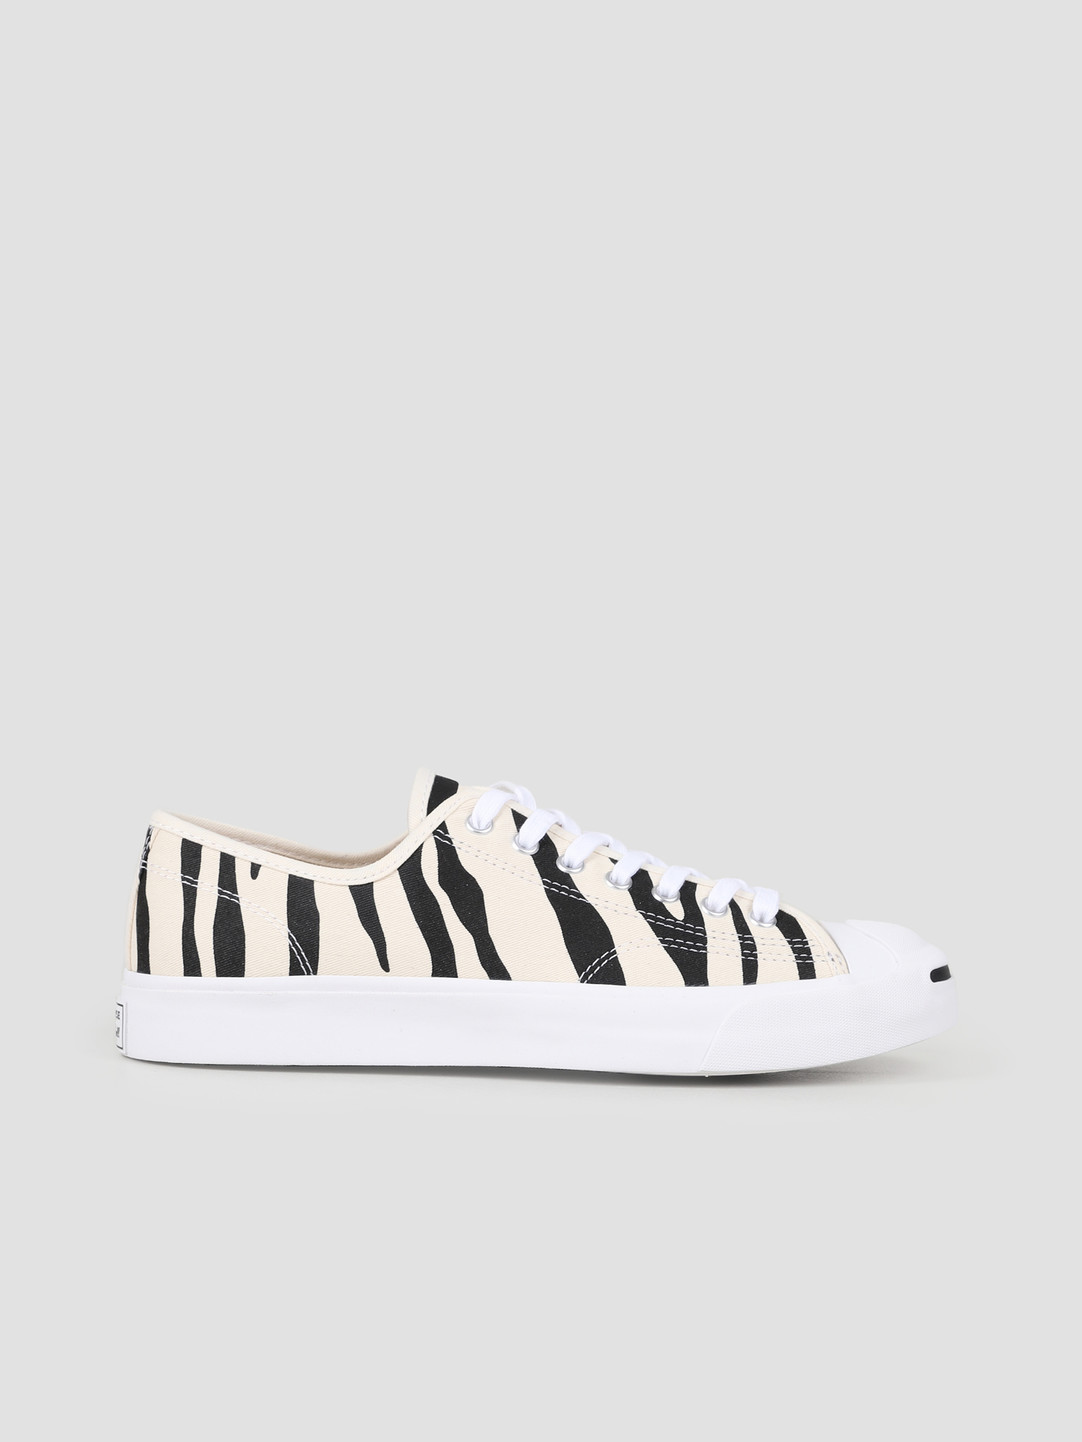 Converse Converse Jack Purcell OX Black Greige White 165028C